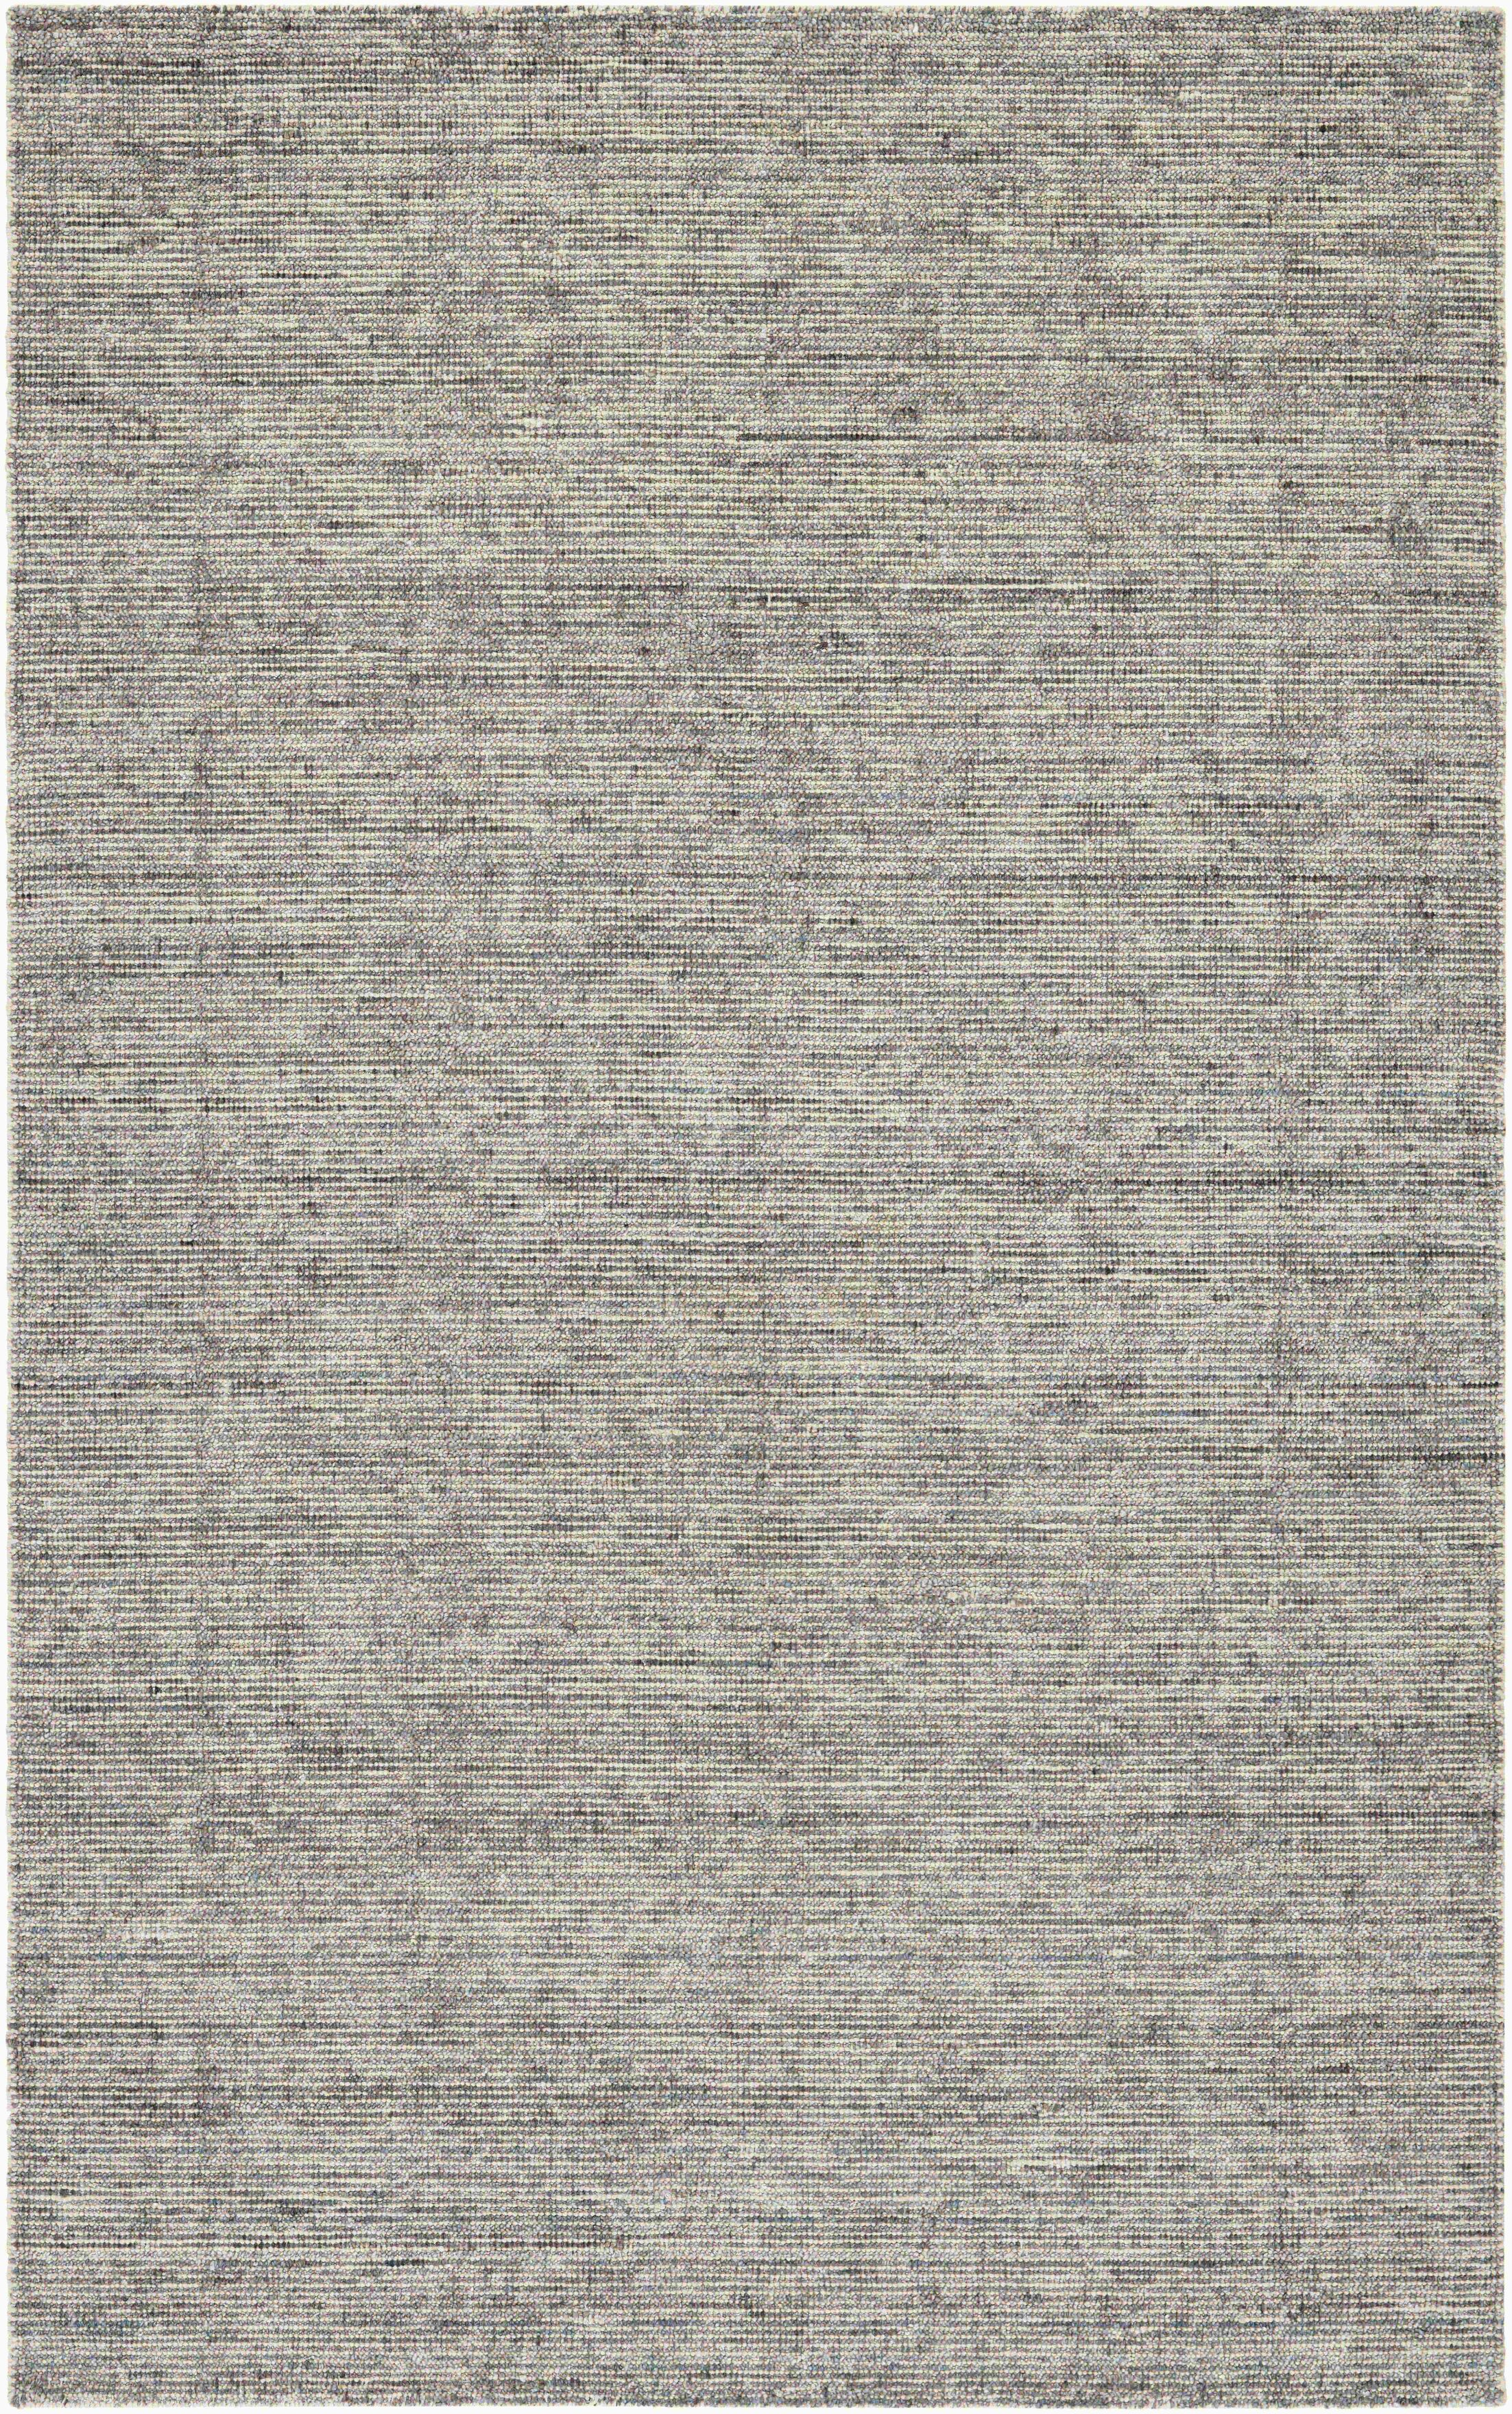 Afton Hand-Loomed Dark Gray Area Rug Rug Size: Rectangle 2' x 4'